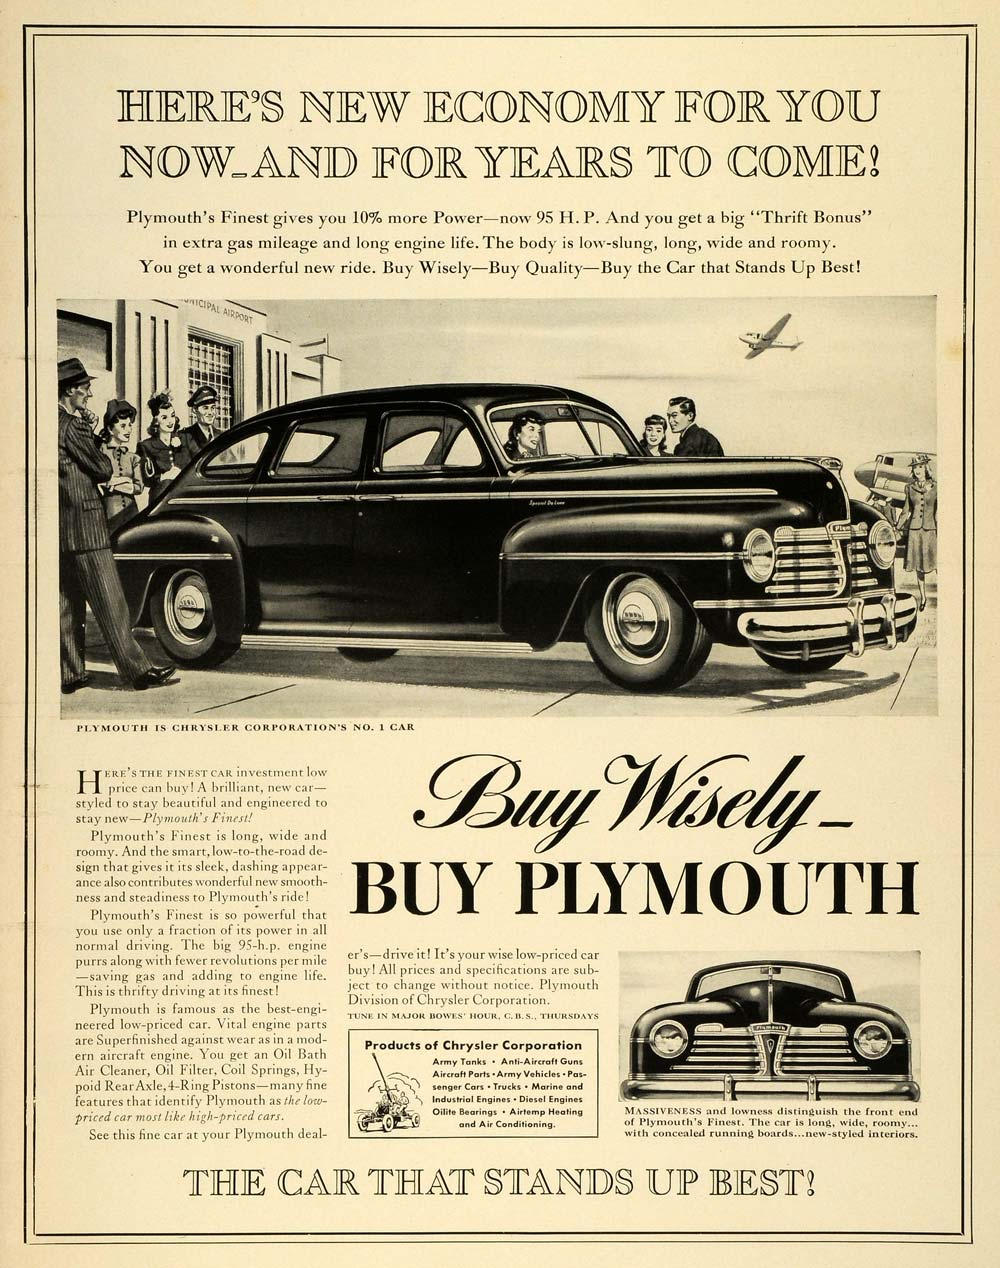 1941 Ad Chrysler Plymouth Vintage Automobiles WWII War Production Efforts LF5